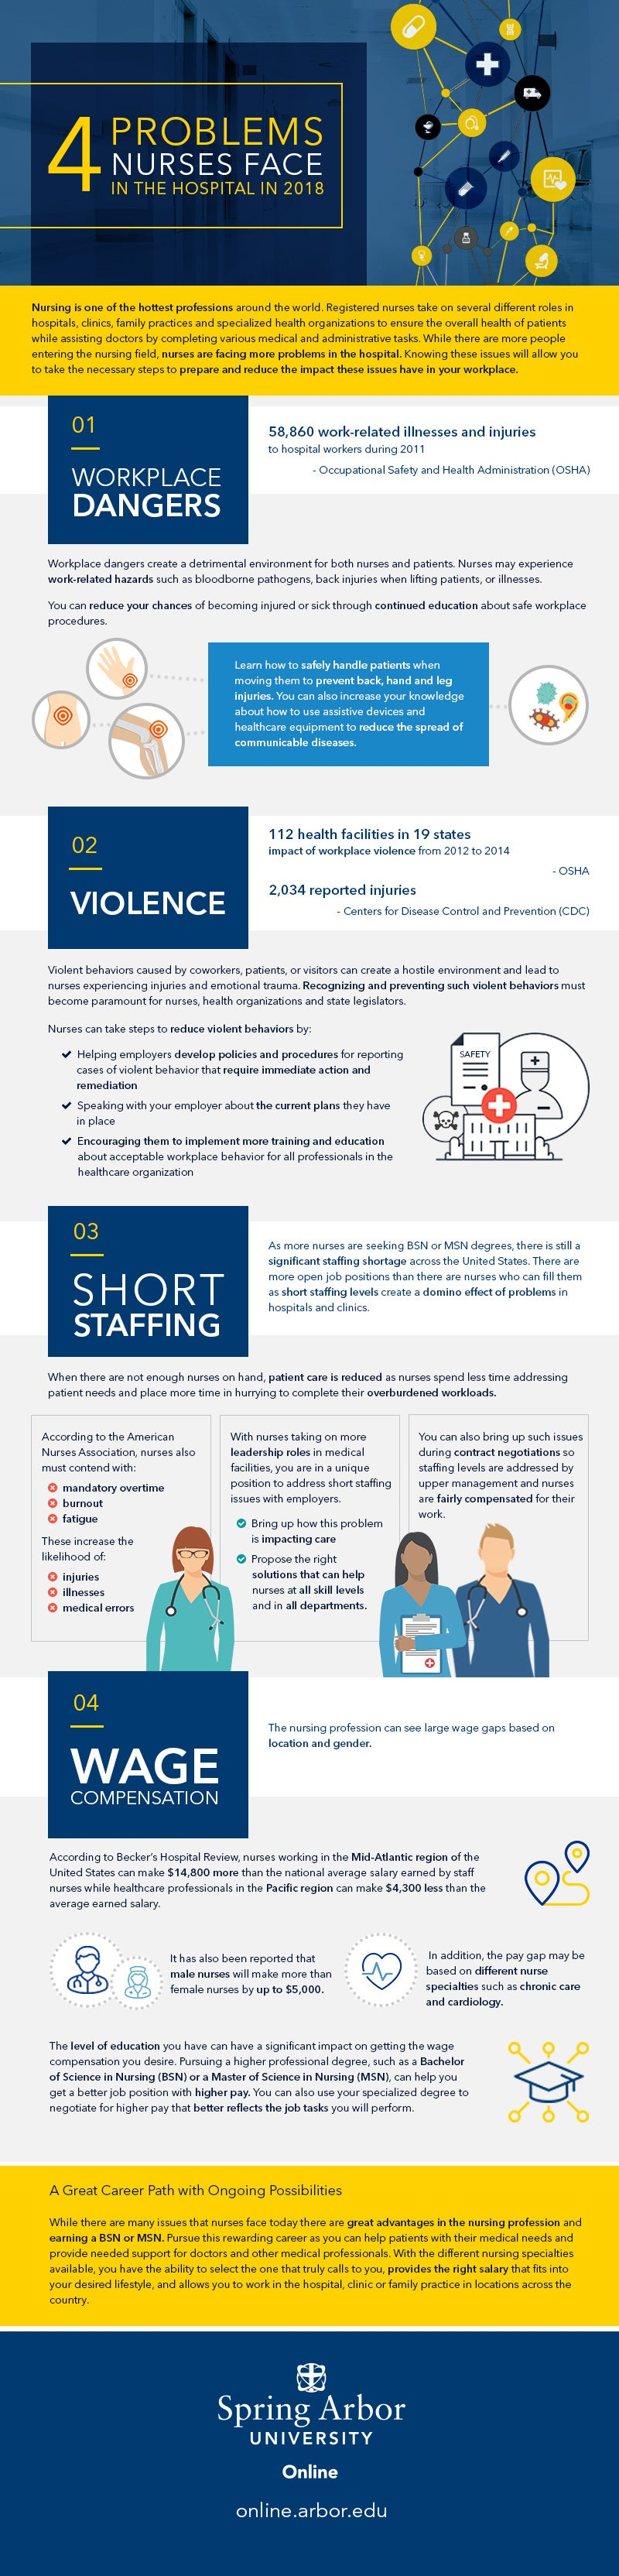 Problems Nurses Face in the Hospital [Infographic] | Spring